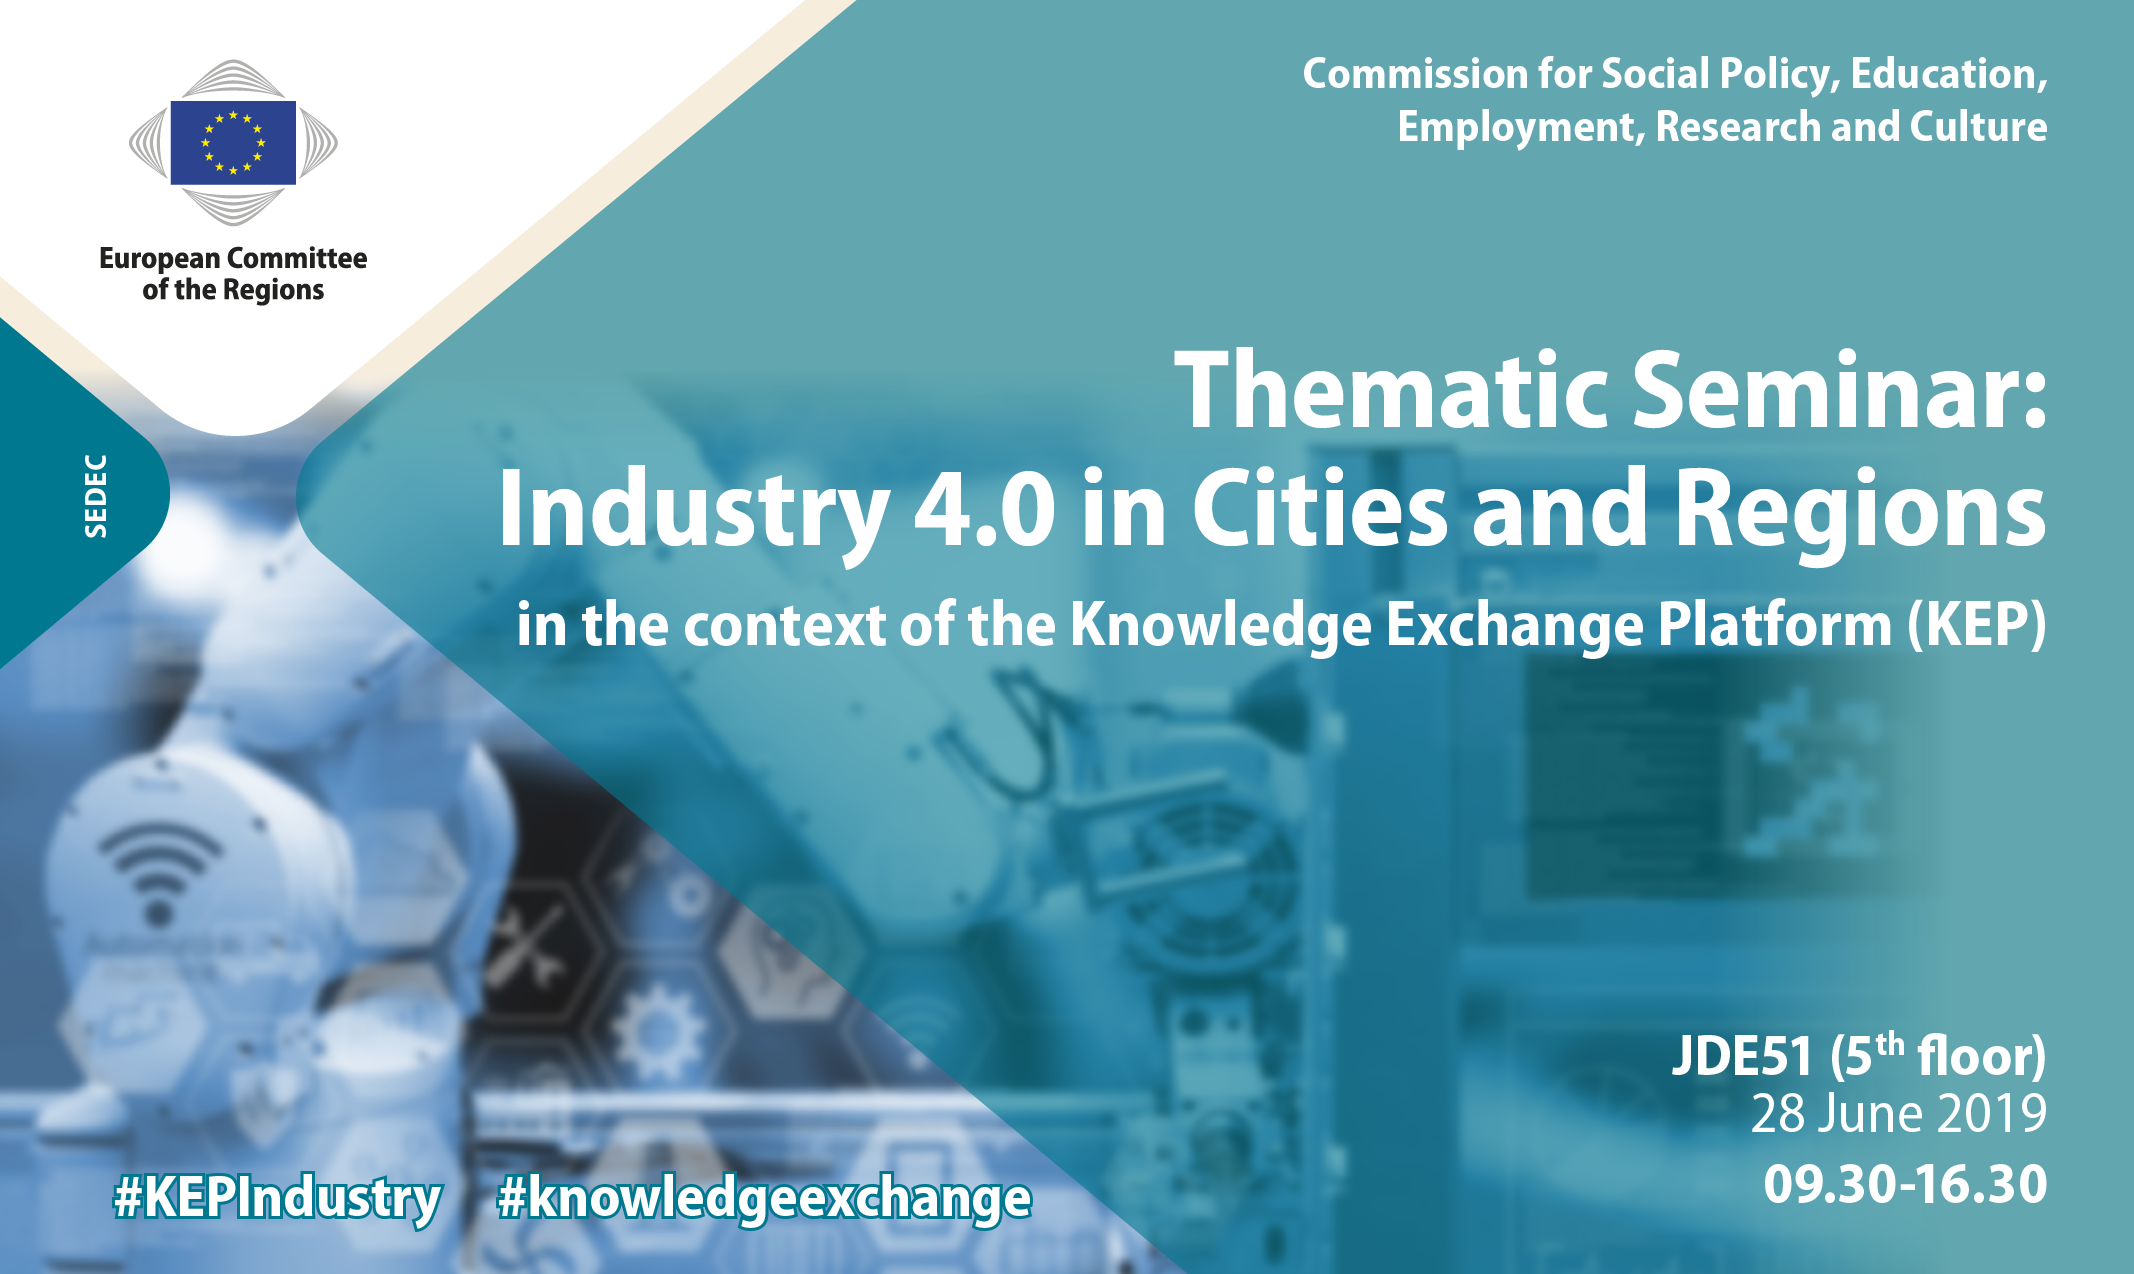 Thematic Seminar - Industry 4.0 in Cities and Regions - in the context of the Knowledge Exchange Platform (KEP)